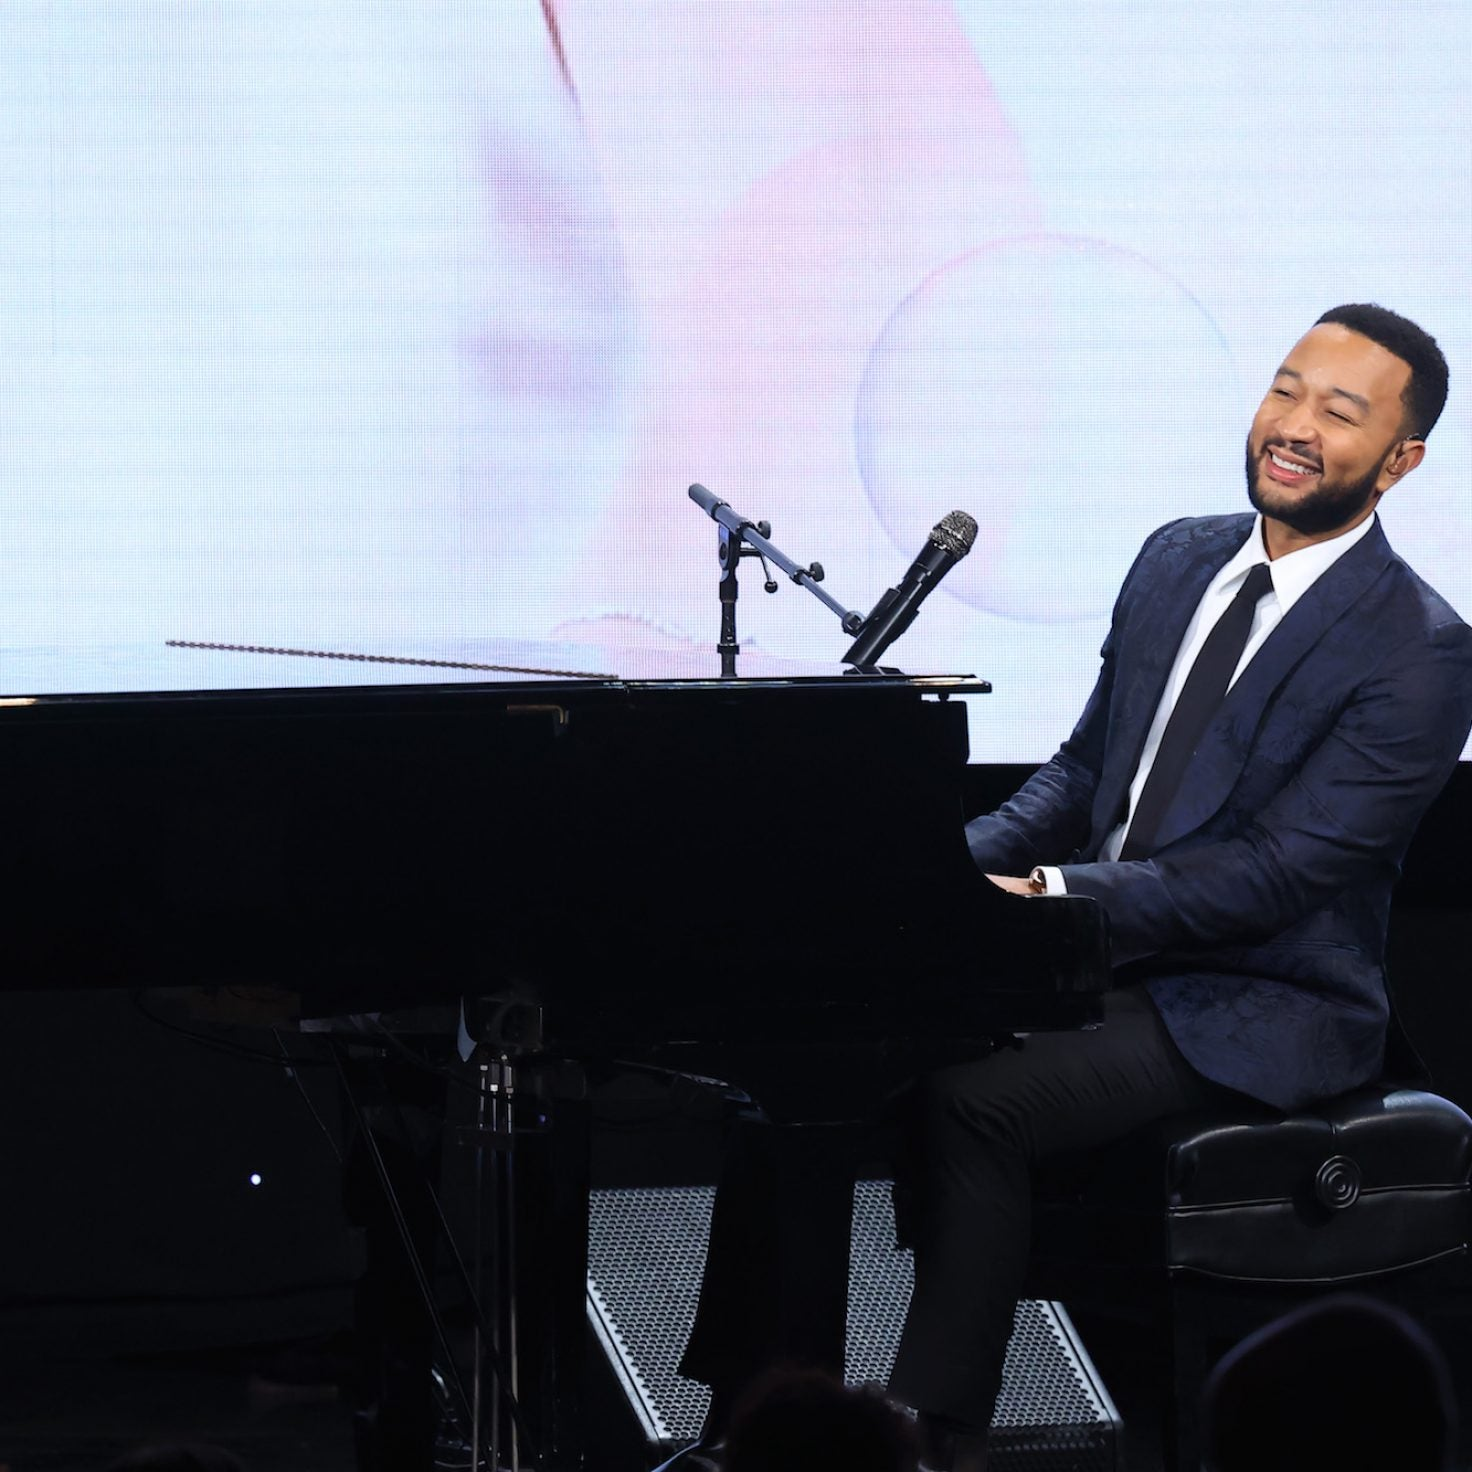 John Legend Shares New Single 'Actions' Following 'Together At Home' Concert